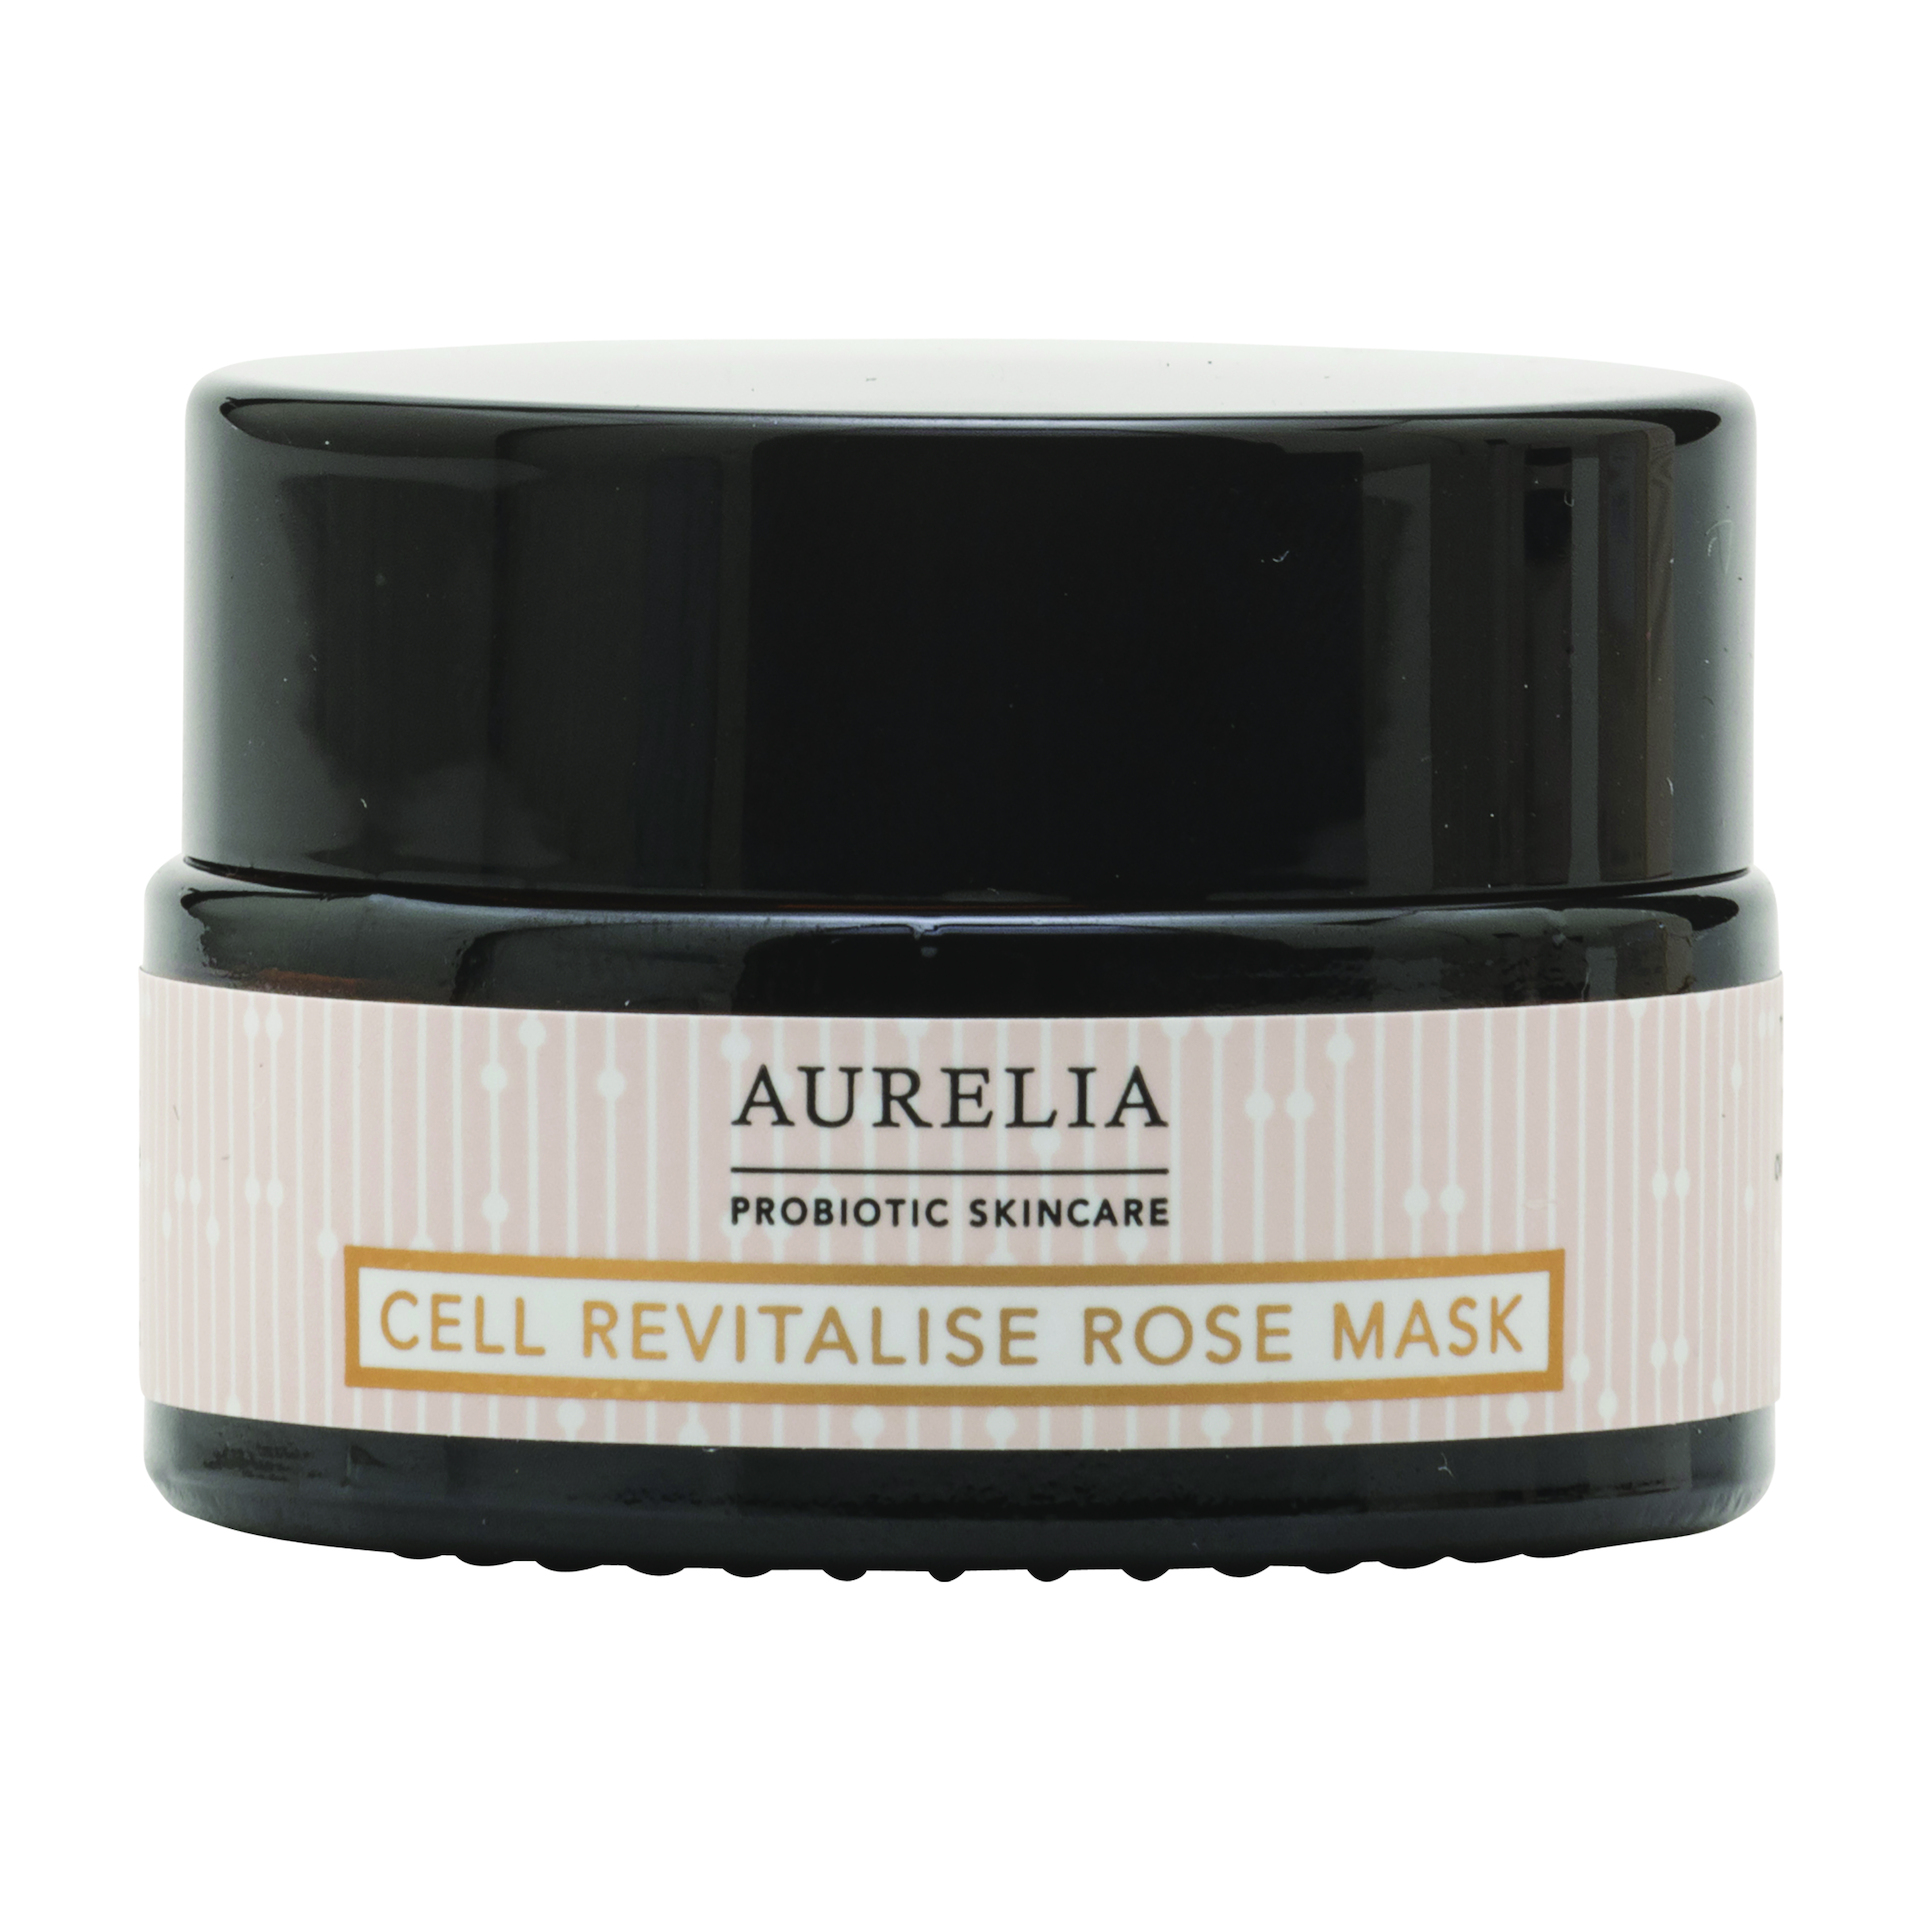 Cell Revitalise Rose Mask